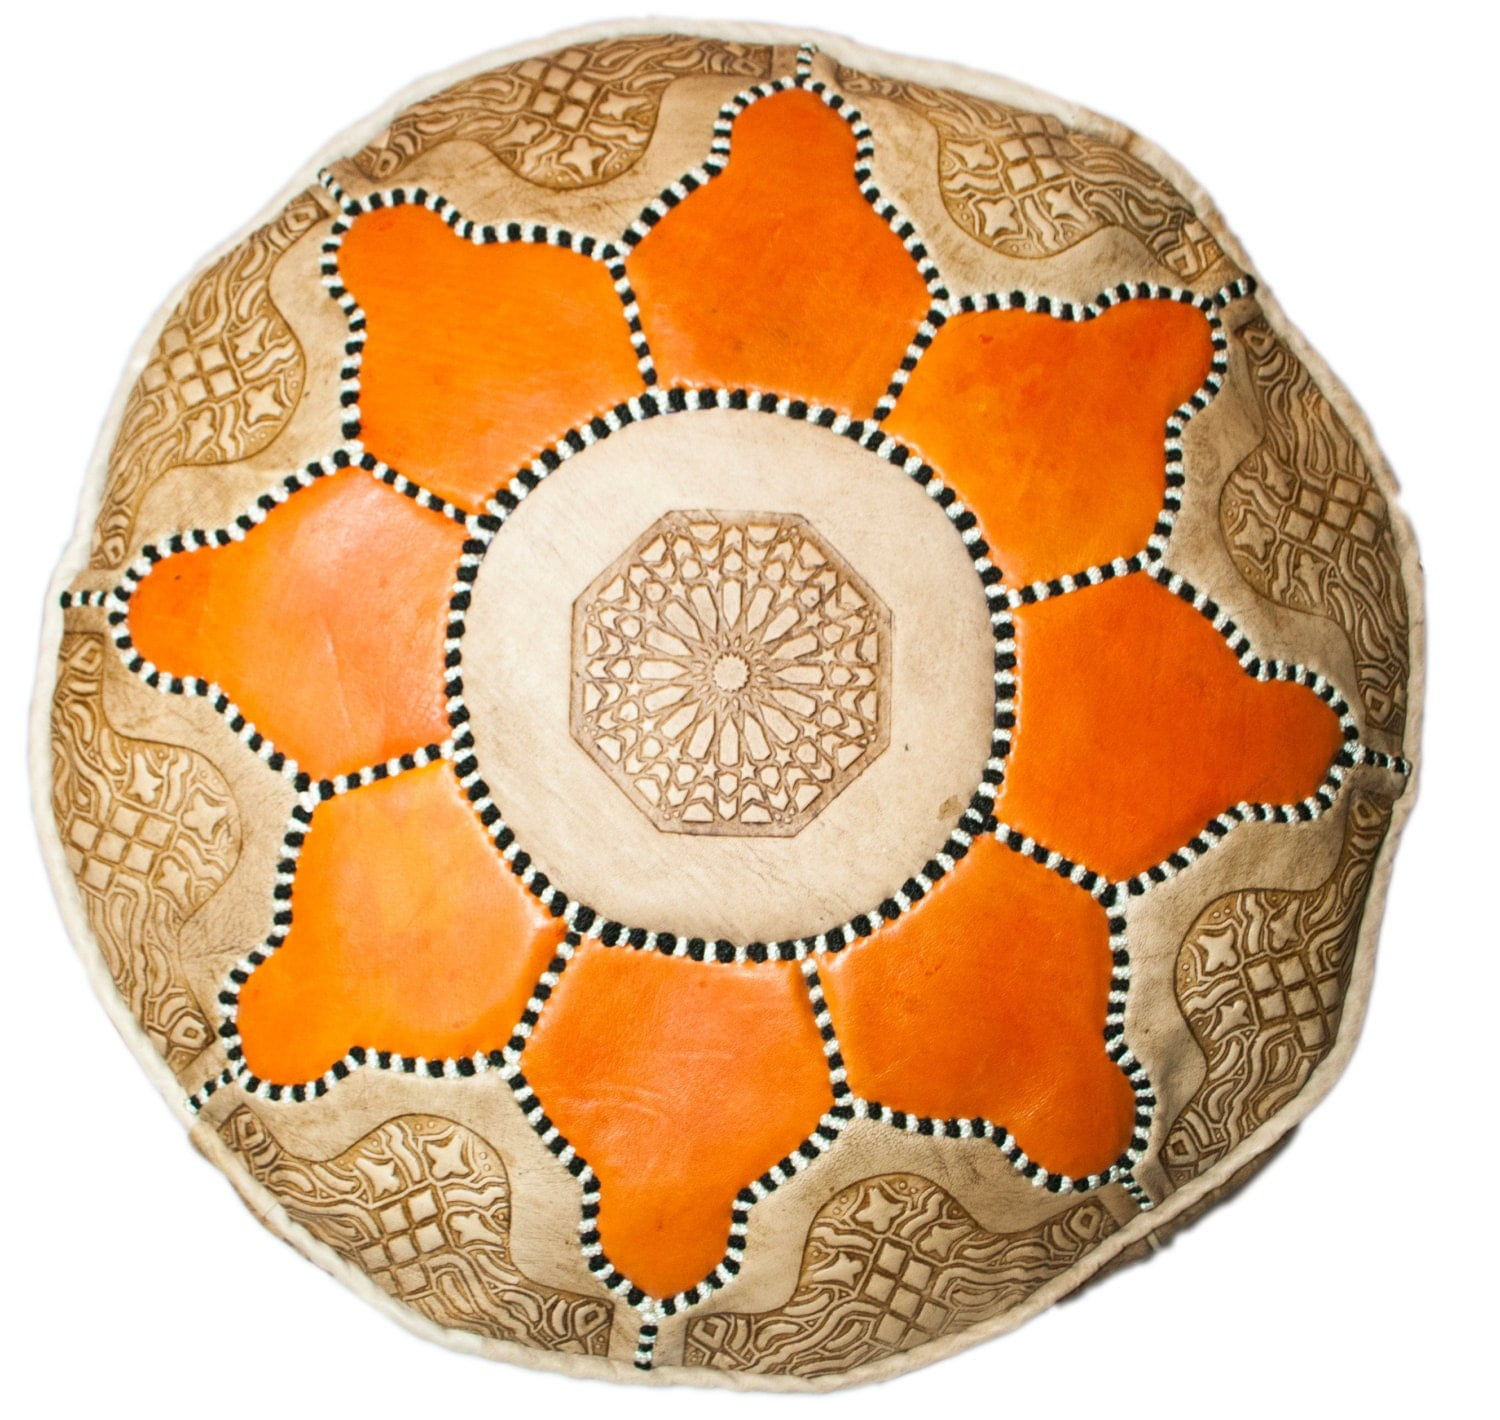 Moroccan Leather Pouffe Orange Flower Leather Pouf  Leather Ottoman  Leather Footstool  Storage Pouffe  Art Deco Furniture